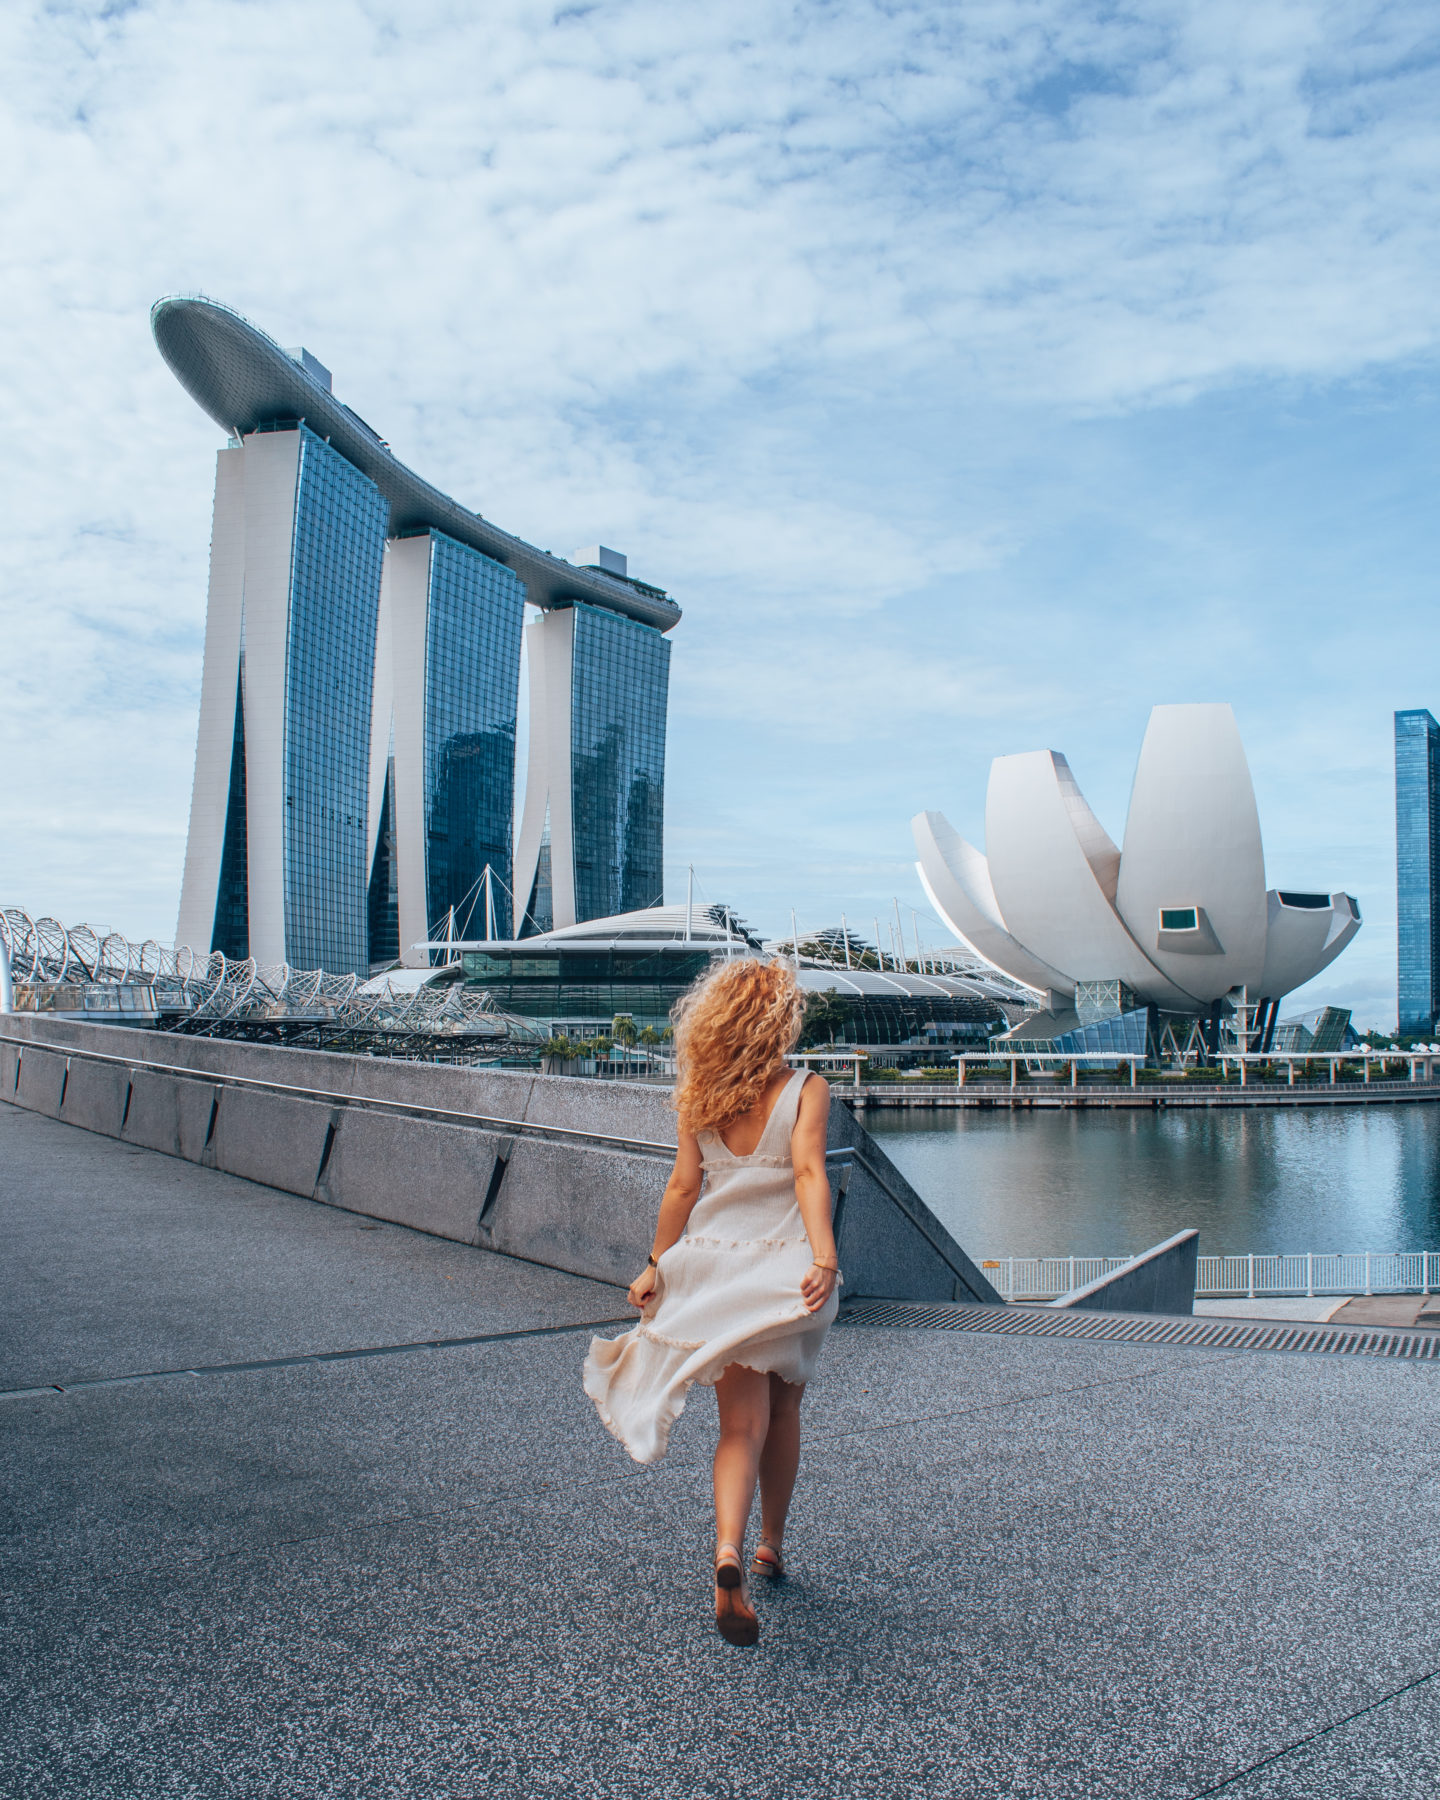 Marina Bay, instagrammable spot in Singapore